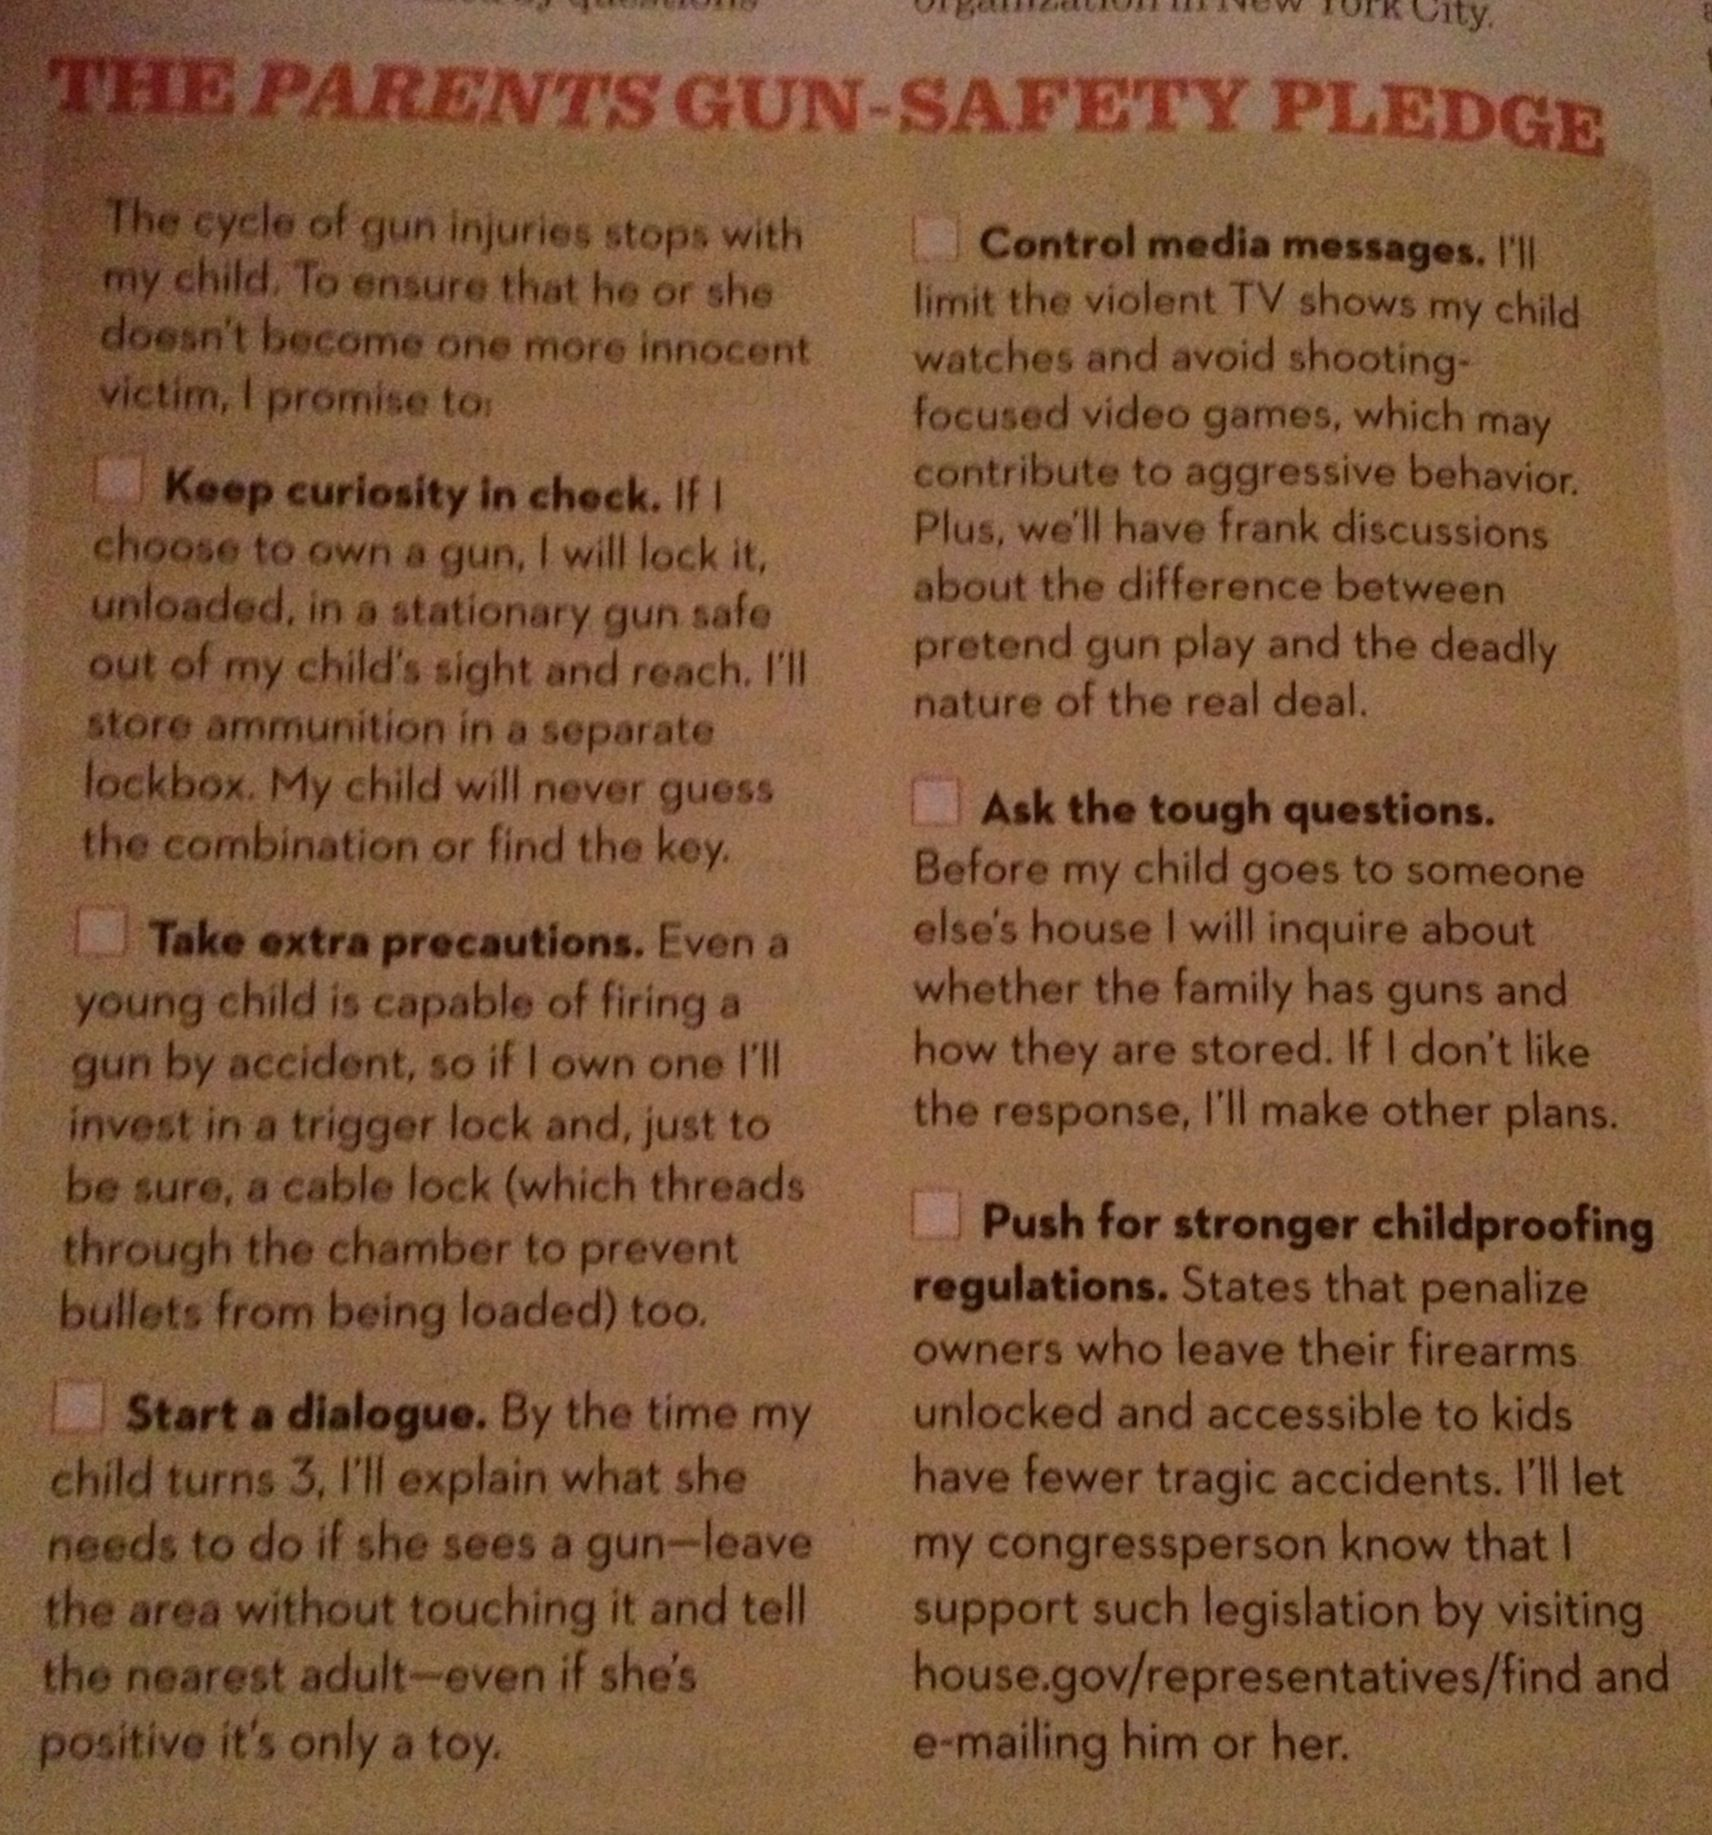 The Parents Gun-Safety Pledge | Health and Safety | Health